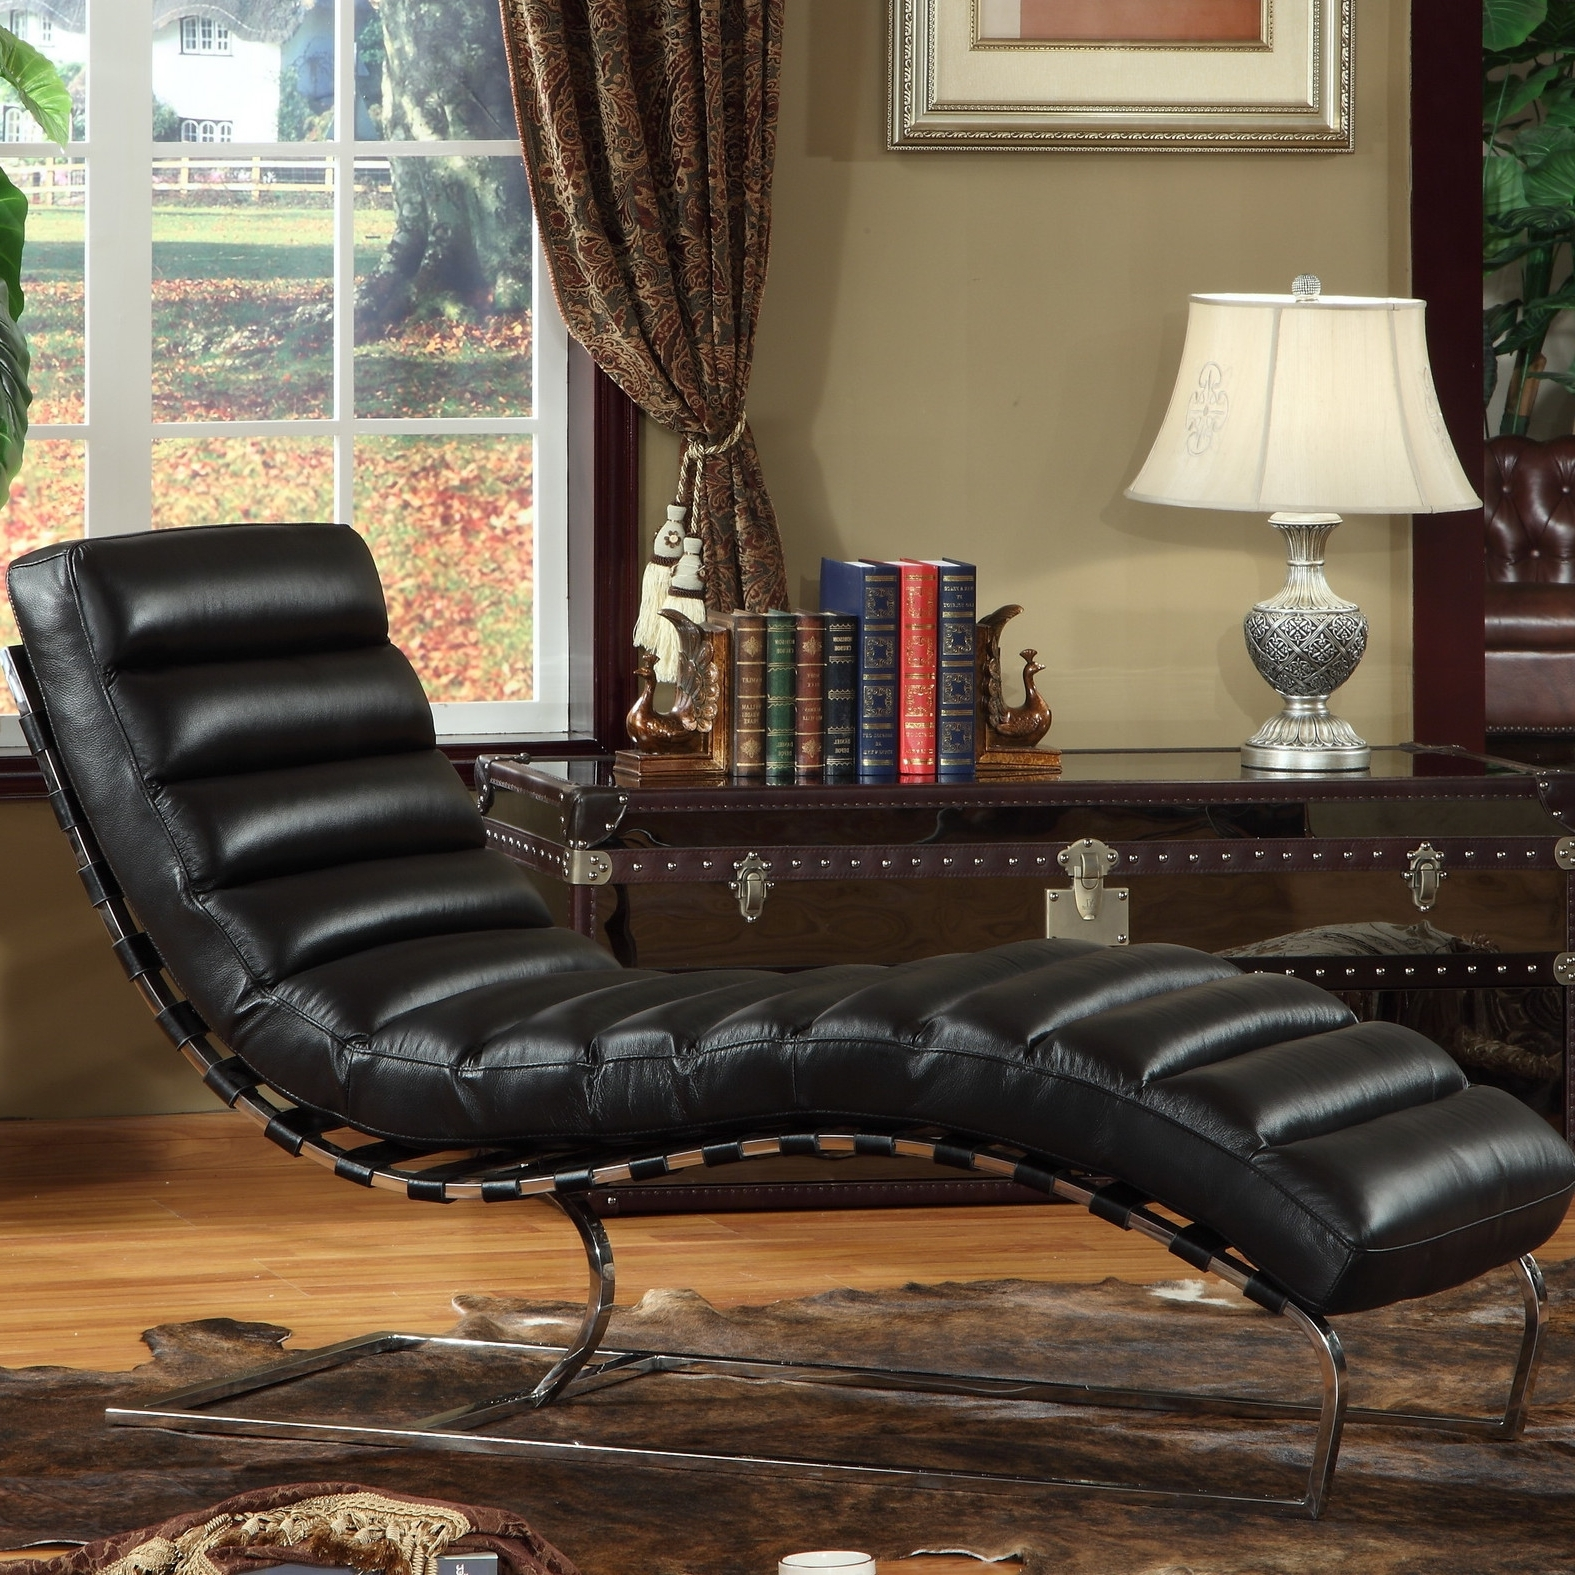 Most Recent Beautiful Leather Chaise Lounge Chair — Lustwithalaugh Design Inside Leather Chaise Lounges (View 11 of 15)